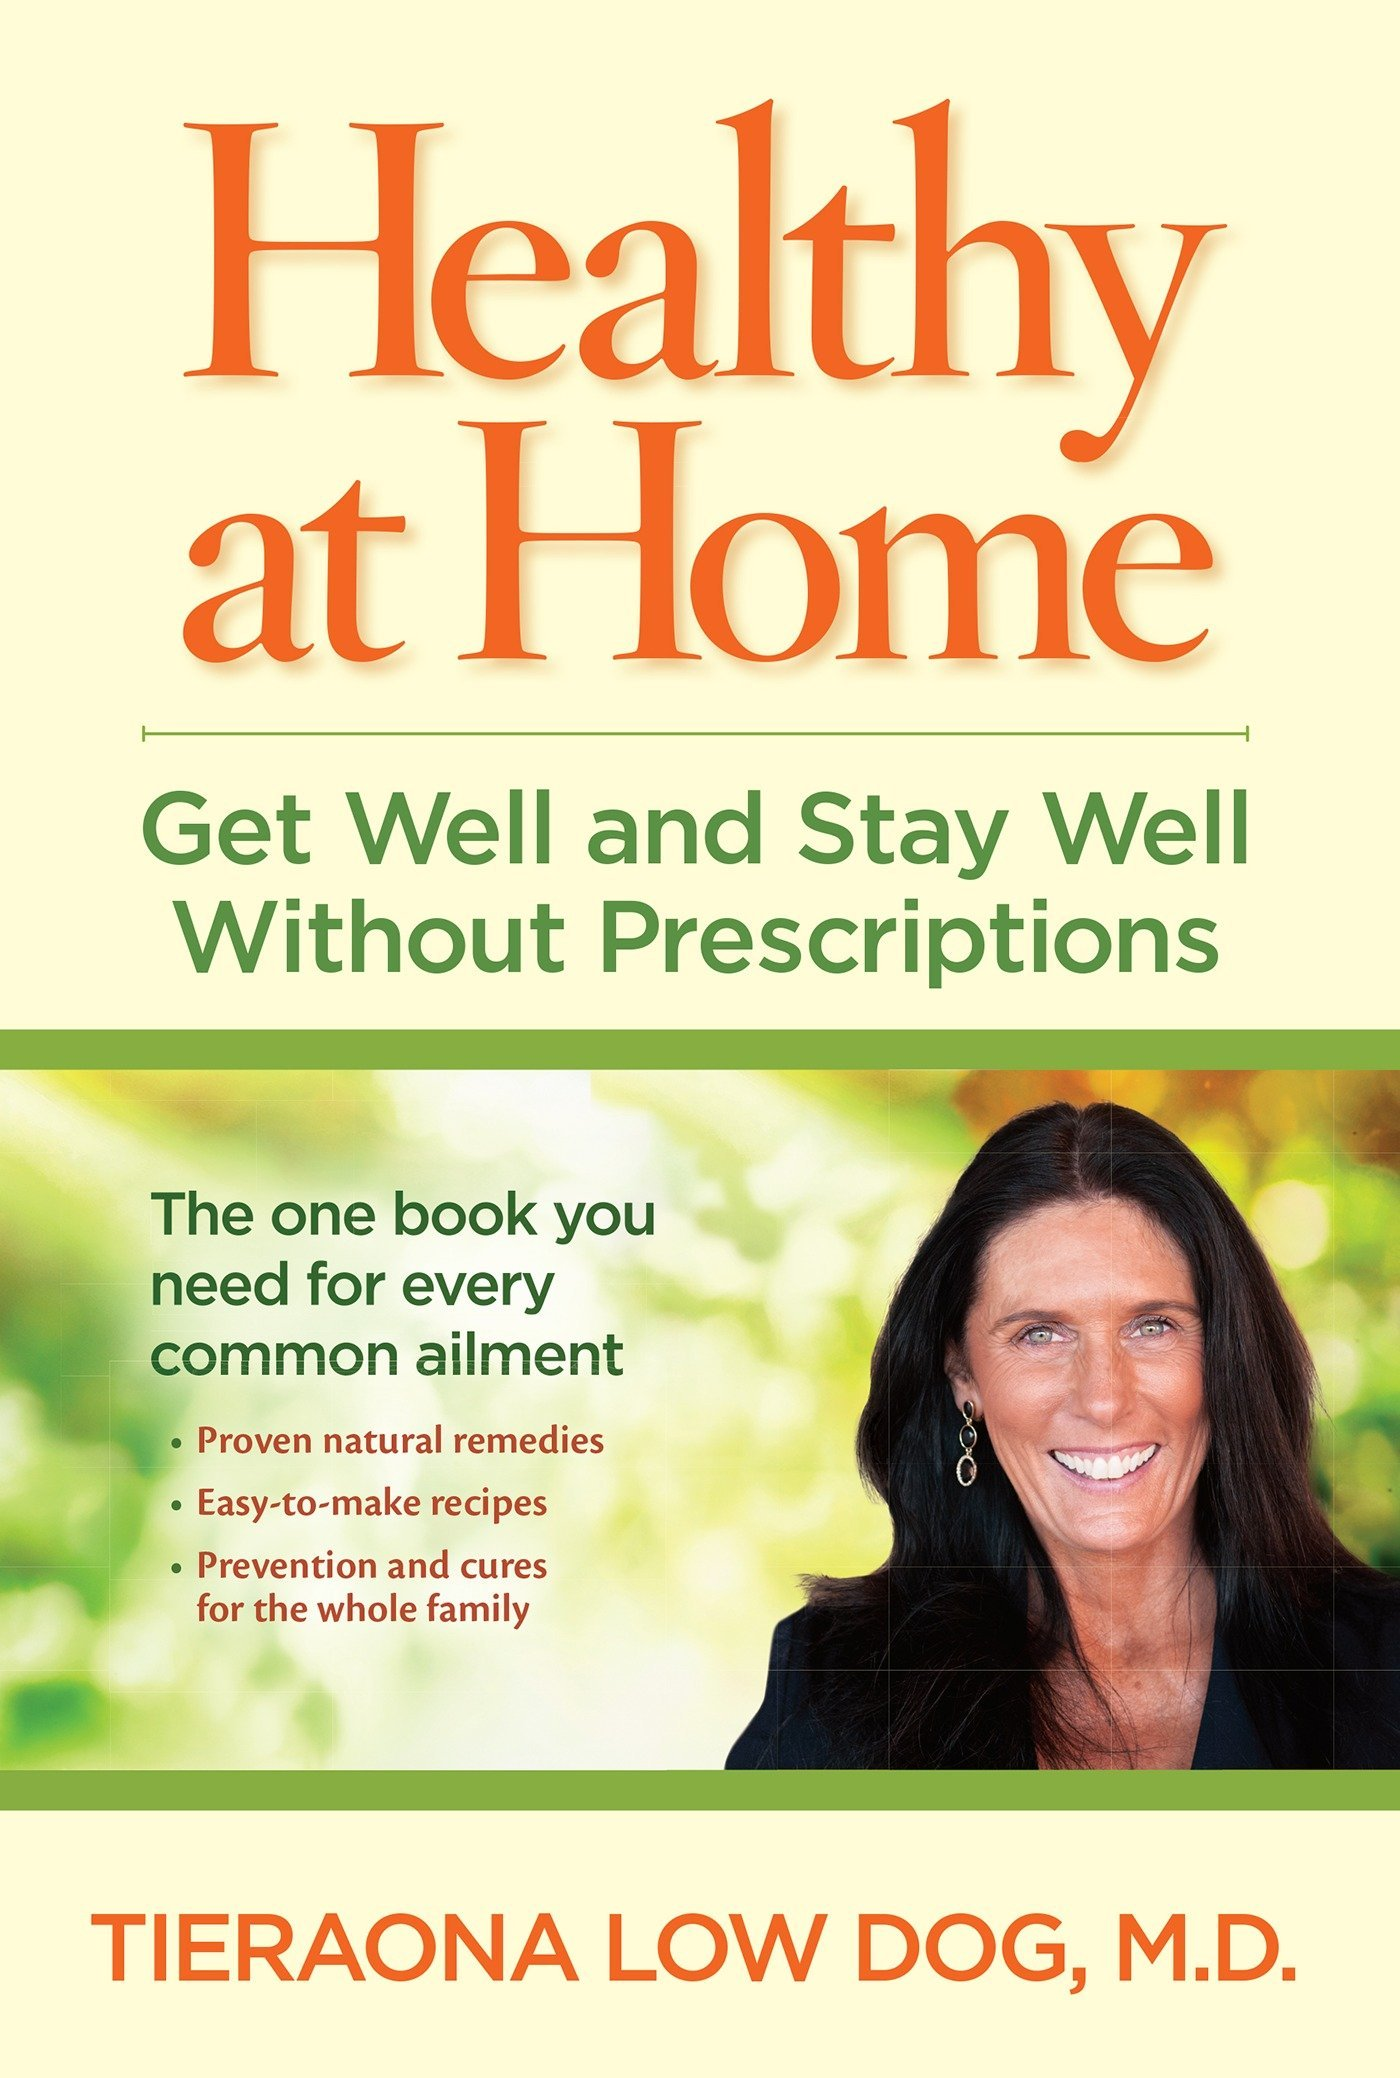 Healthy at Home: Get Well and Stay Well Without Prescriptions Paperback –  January 13, 2015